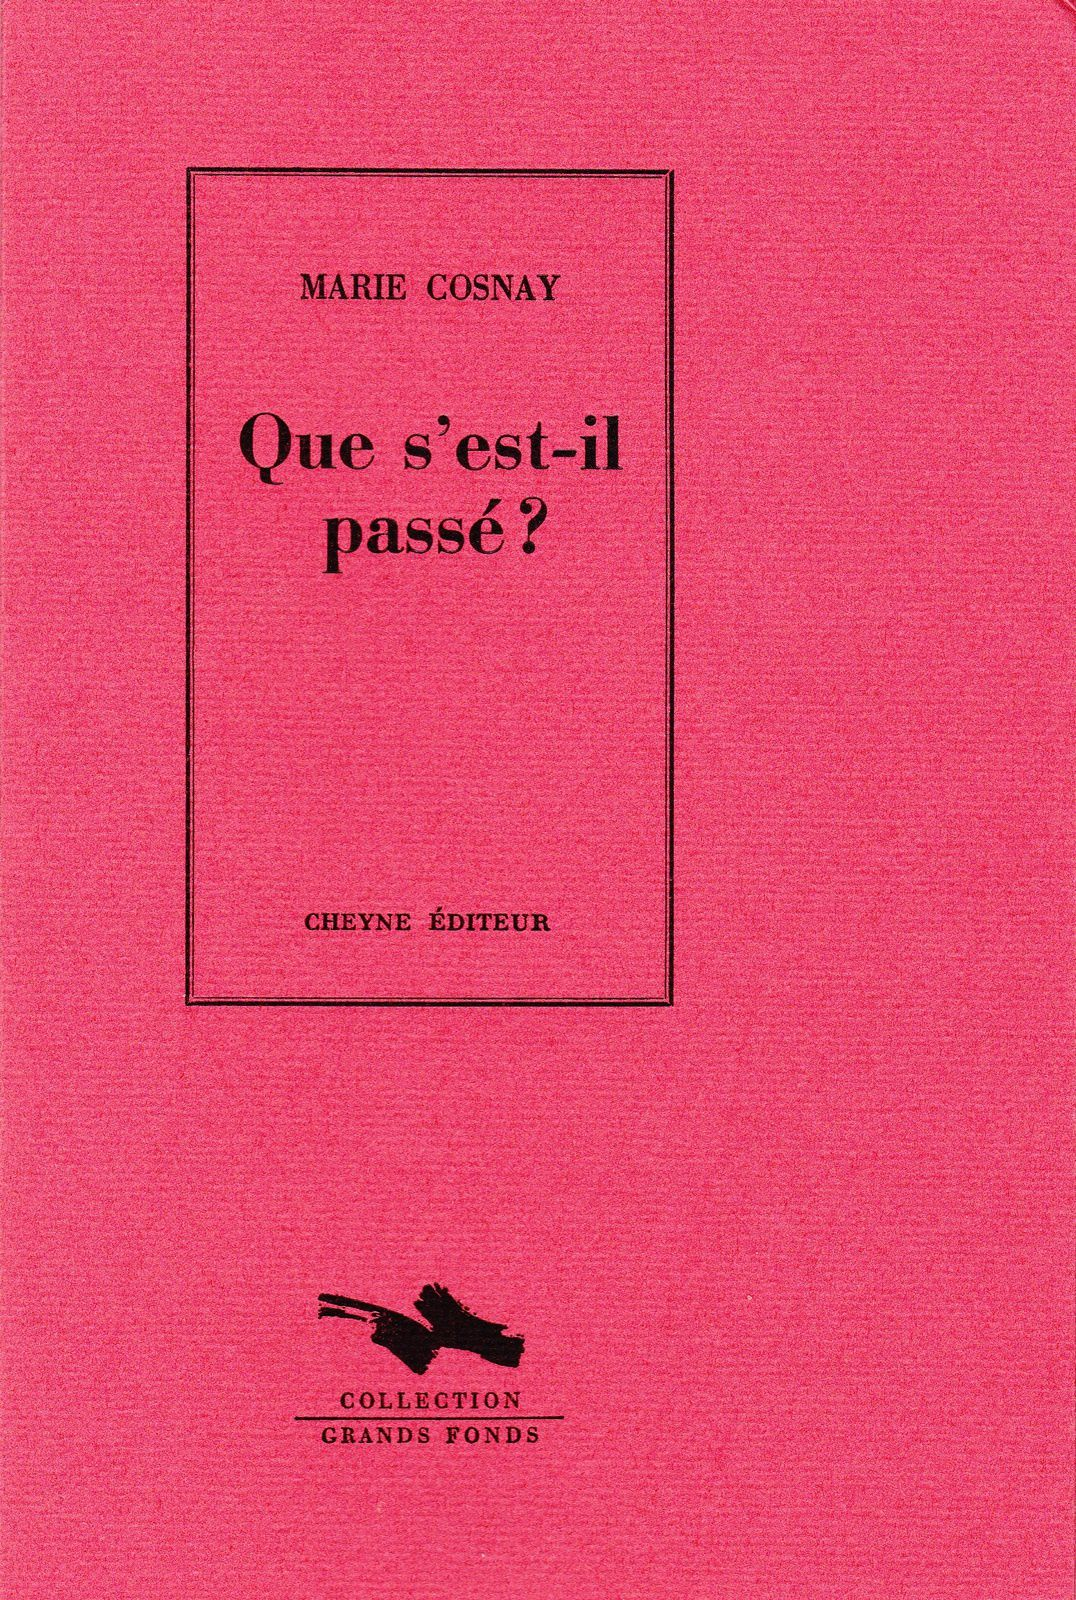 Election - Marie Cosnay